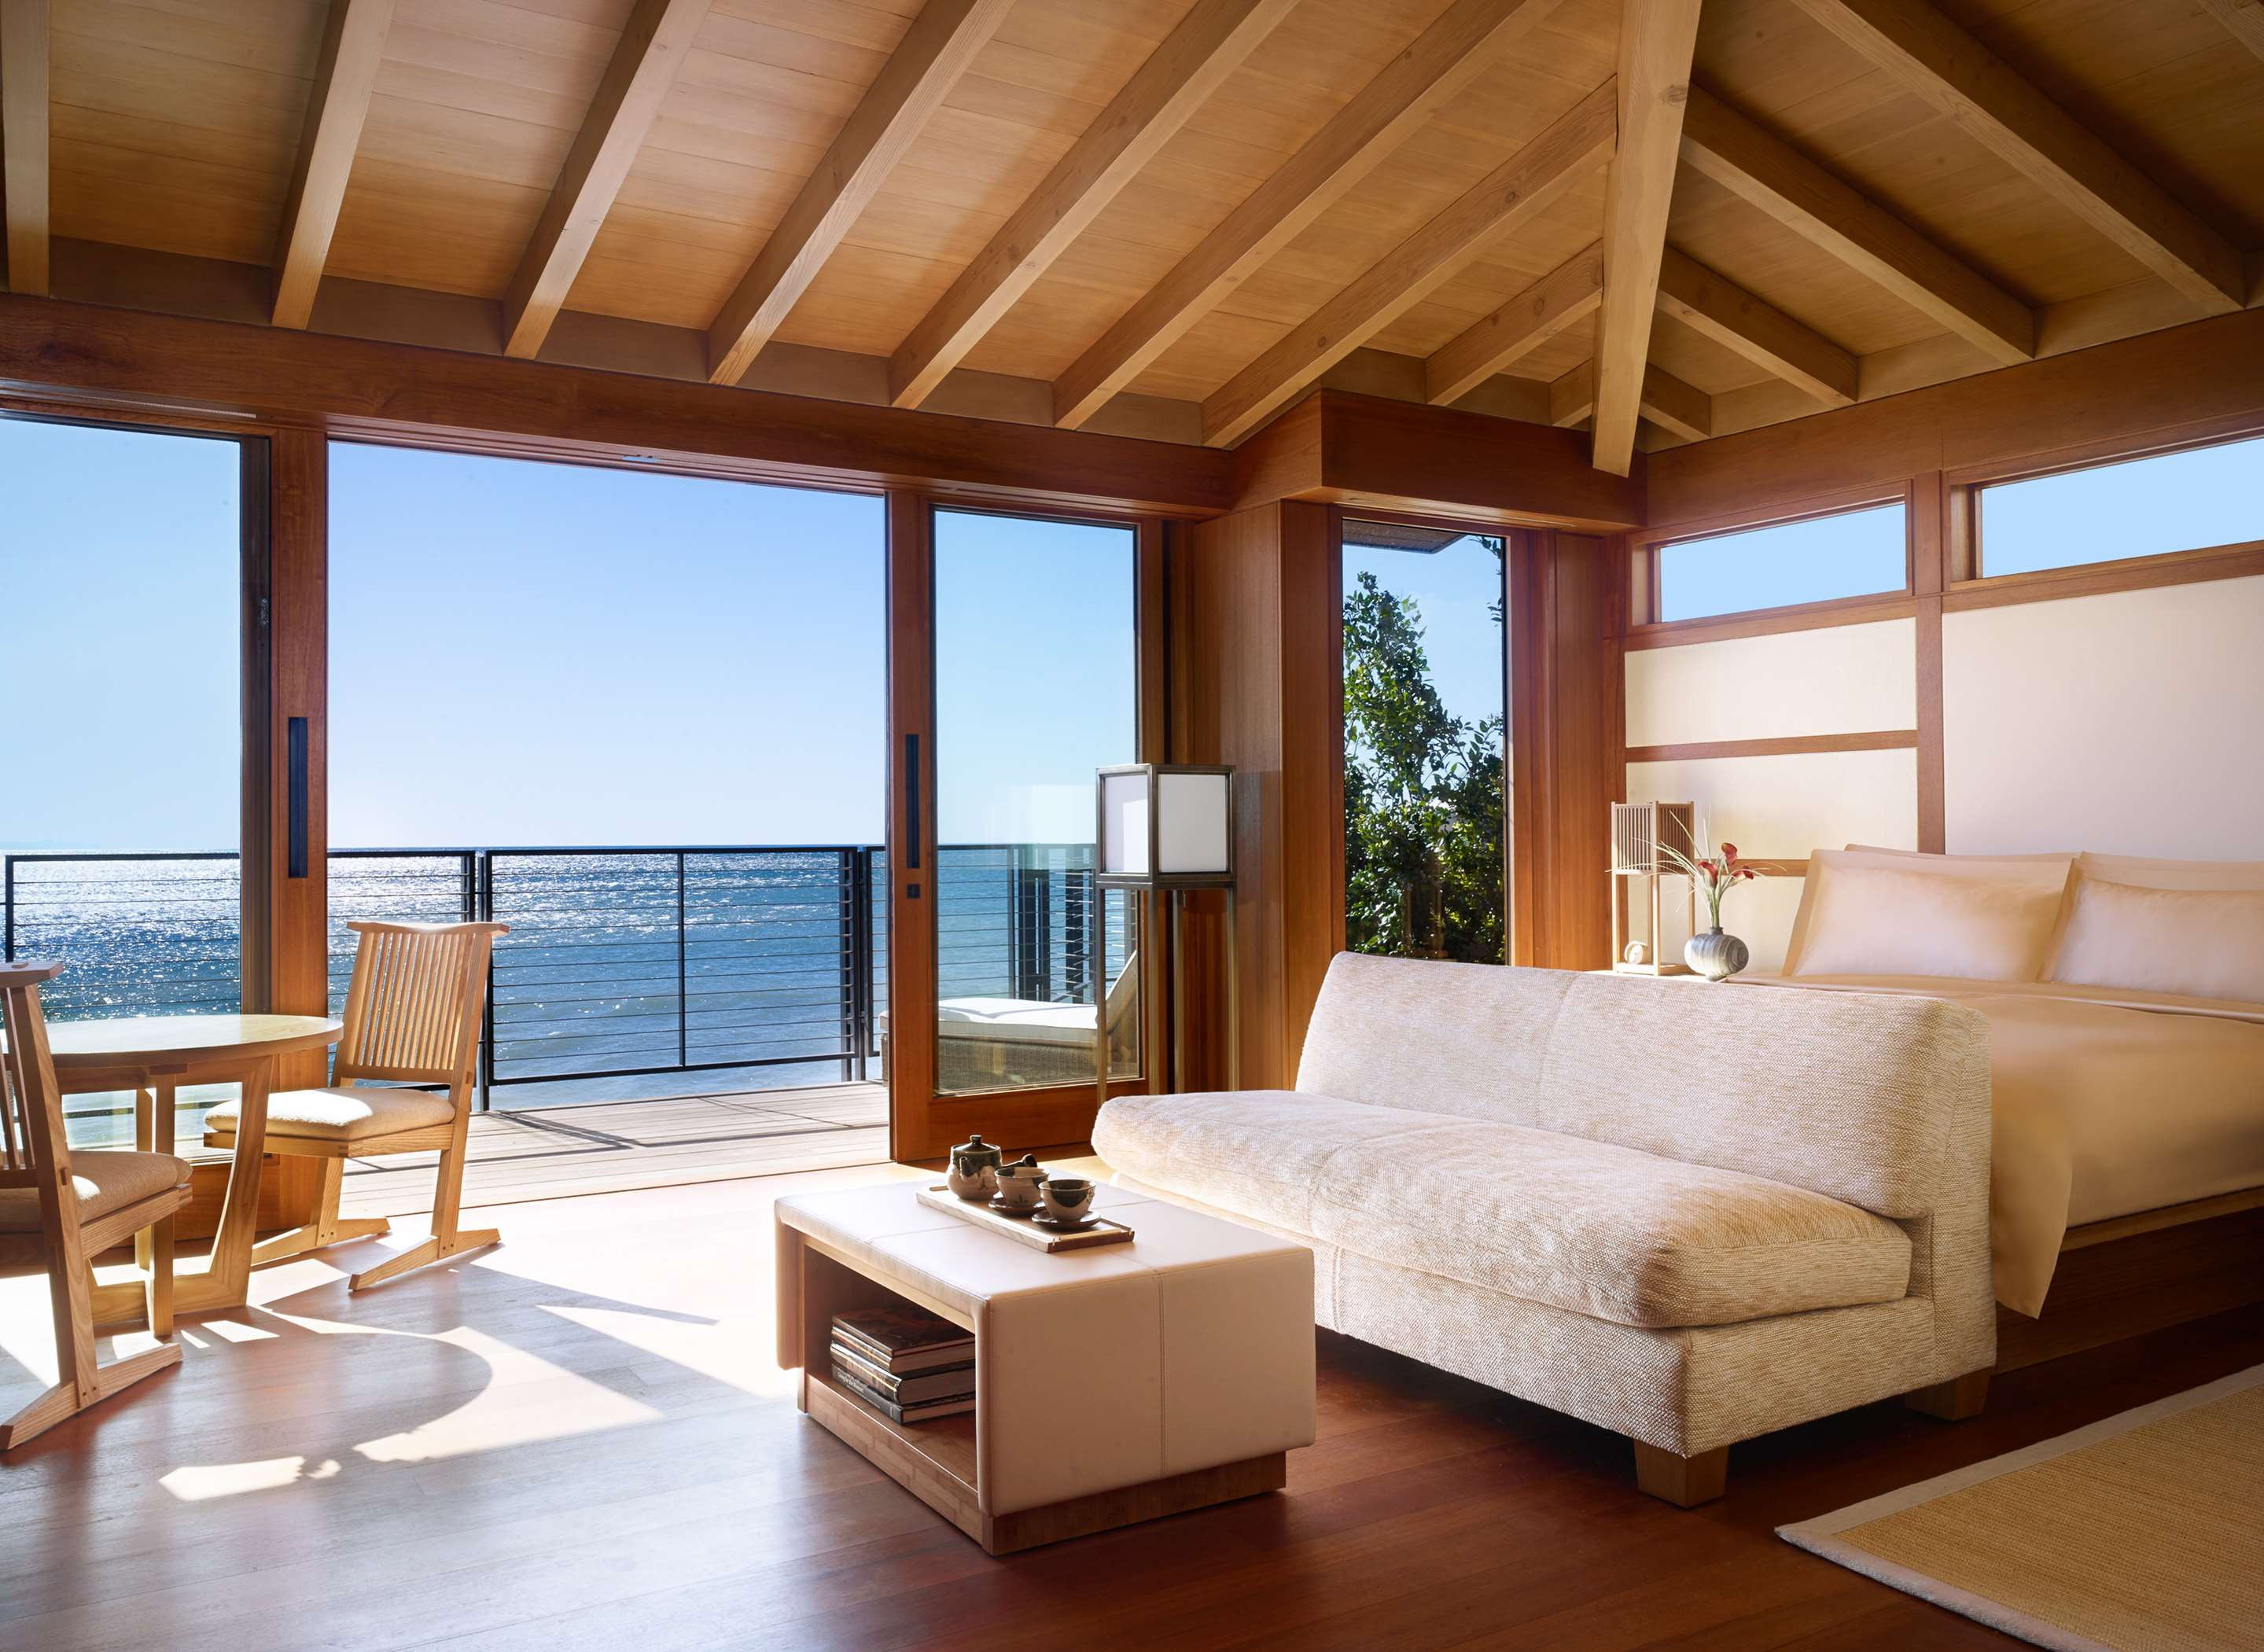 A ryokan-inspired room with dramatic ocean views (and a bed in lieu of a tatami mat).